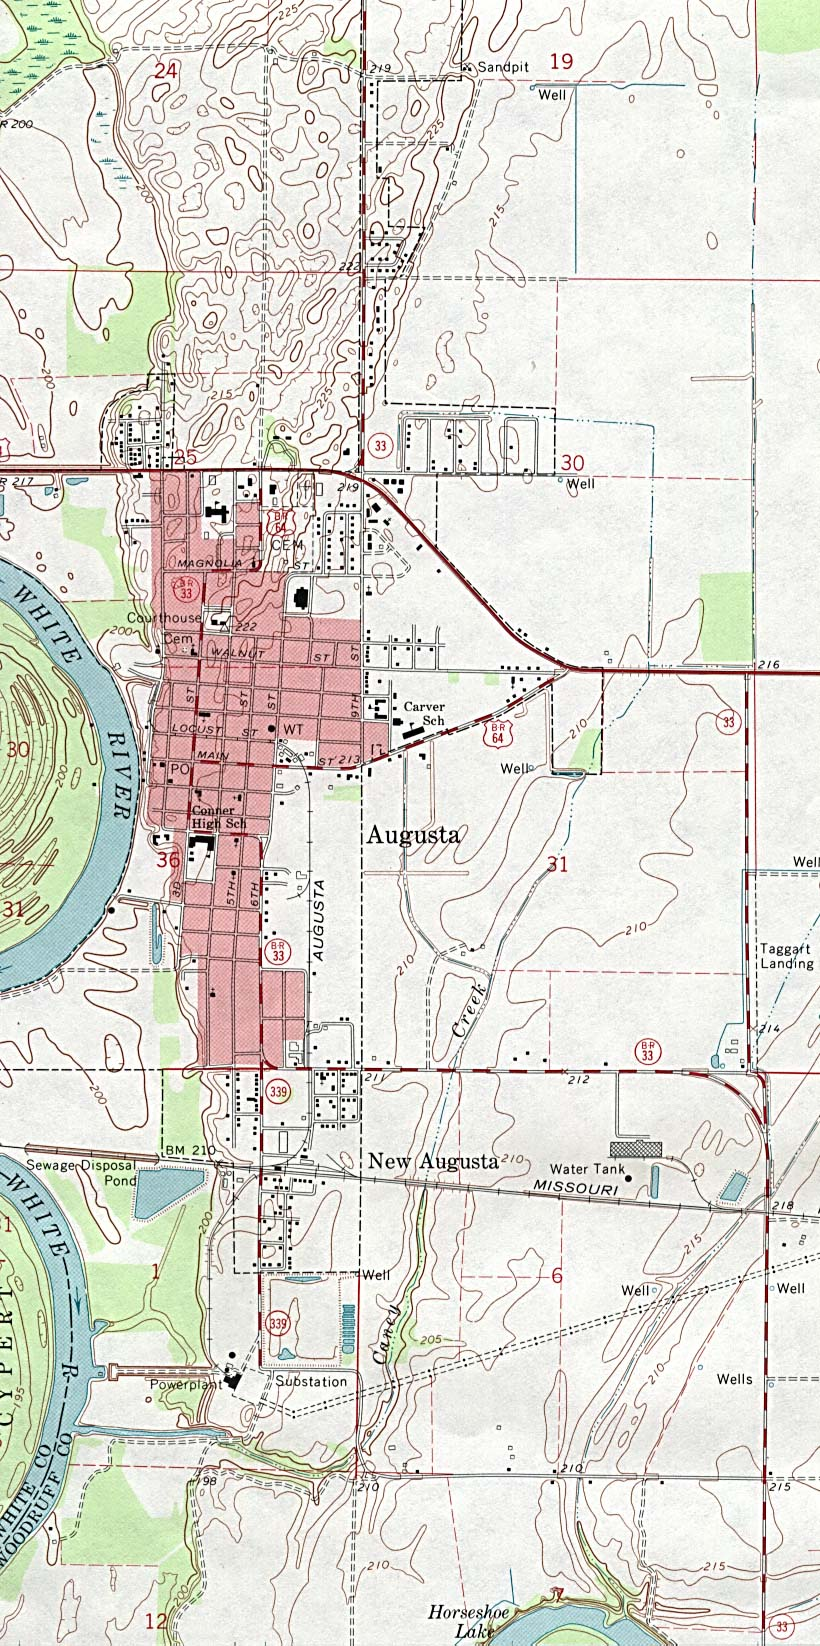 Augusta Topographic City Map, Arkansas, United States